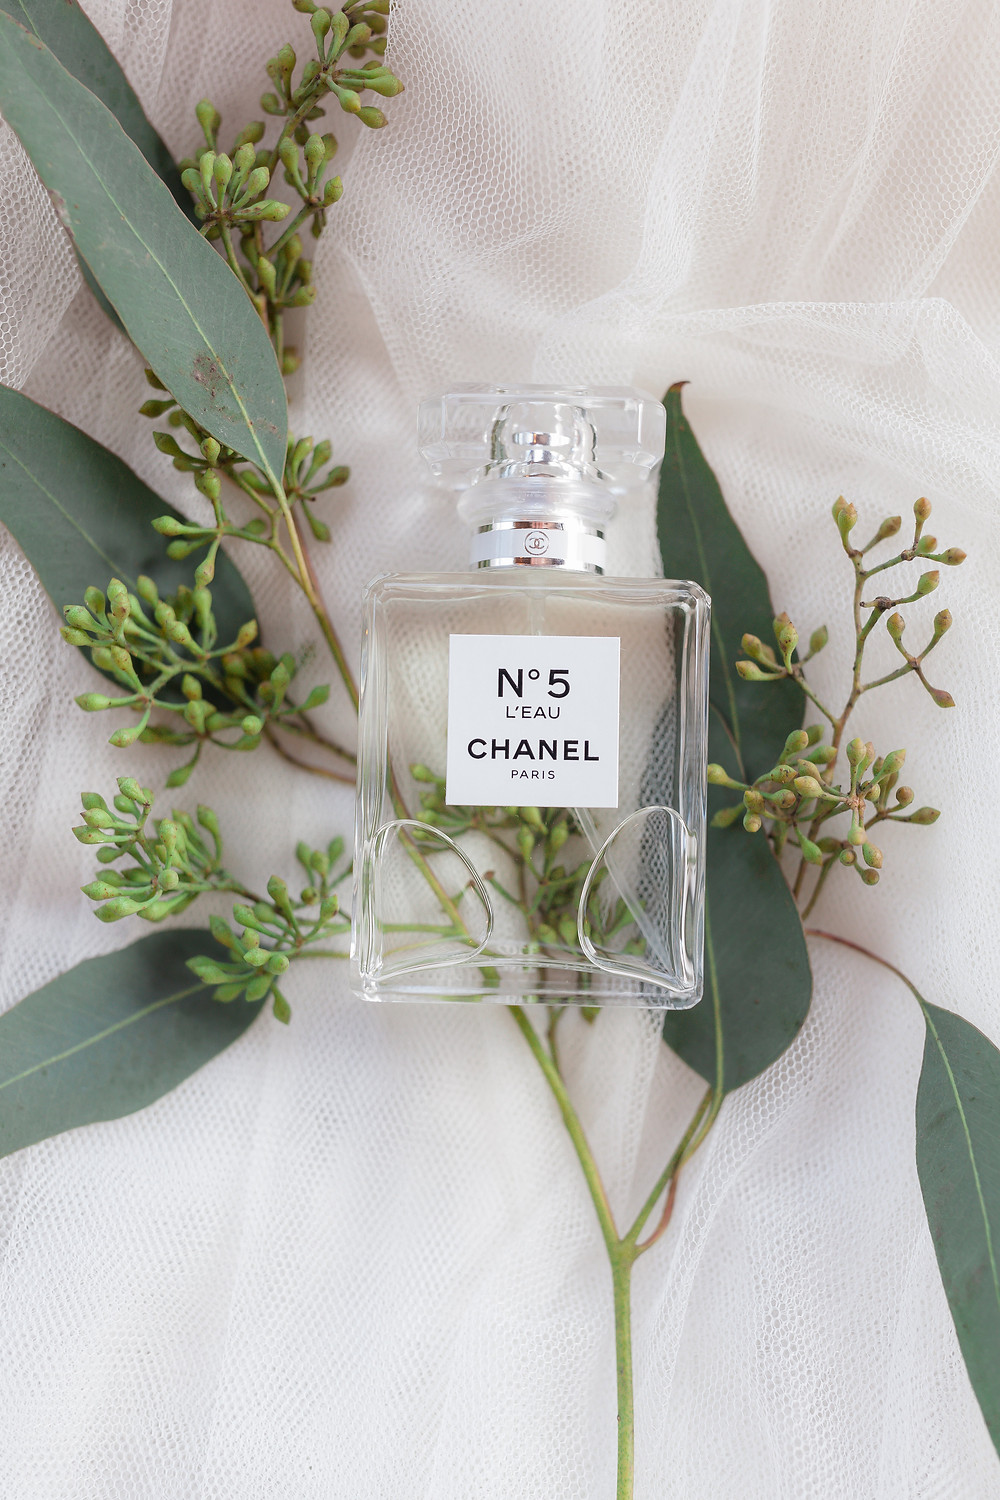 bottle of chanel no. 5 perfume with eucalyptus